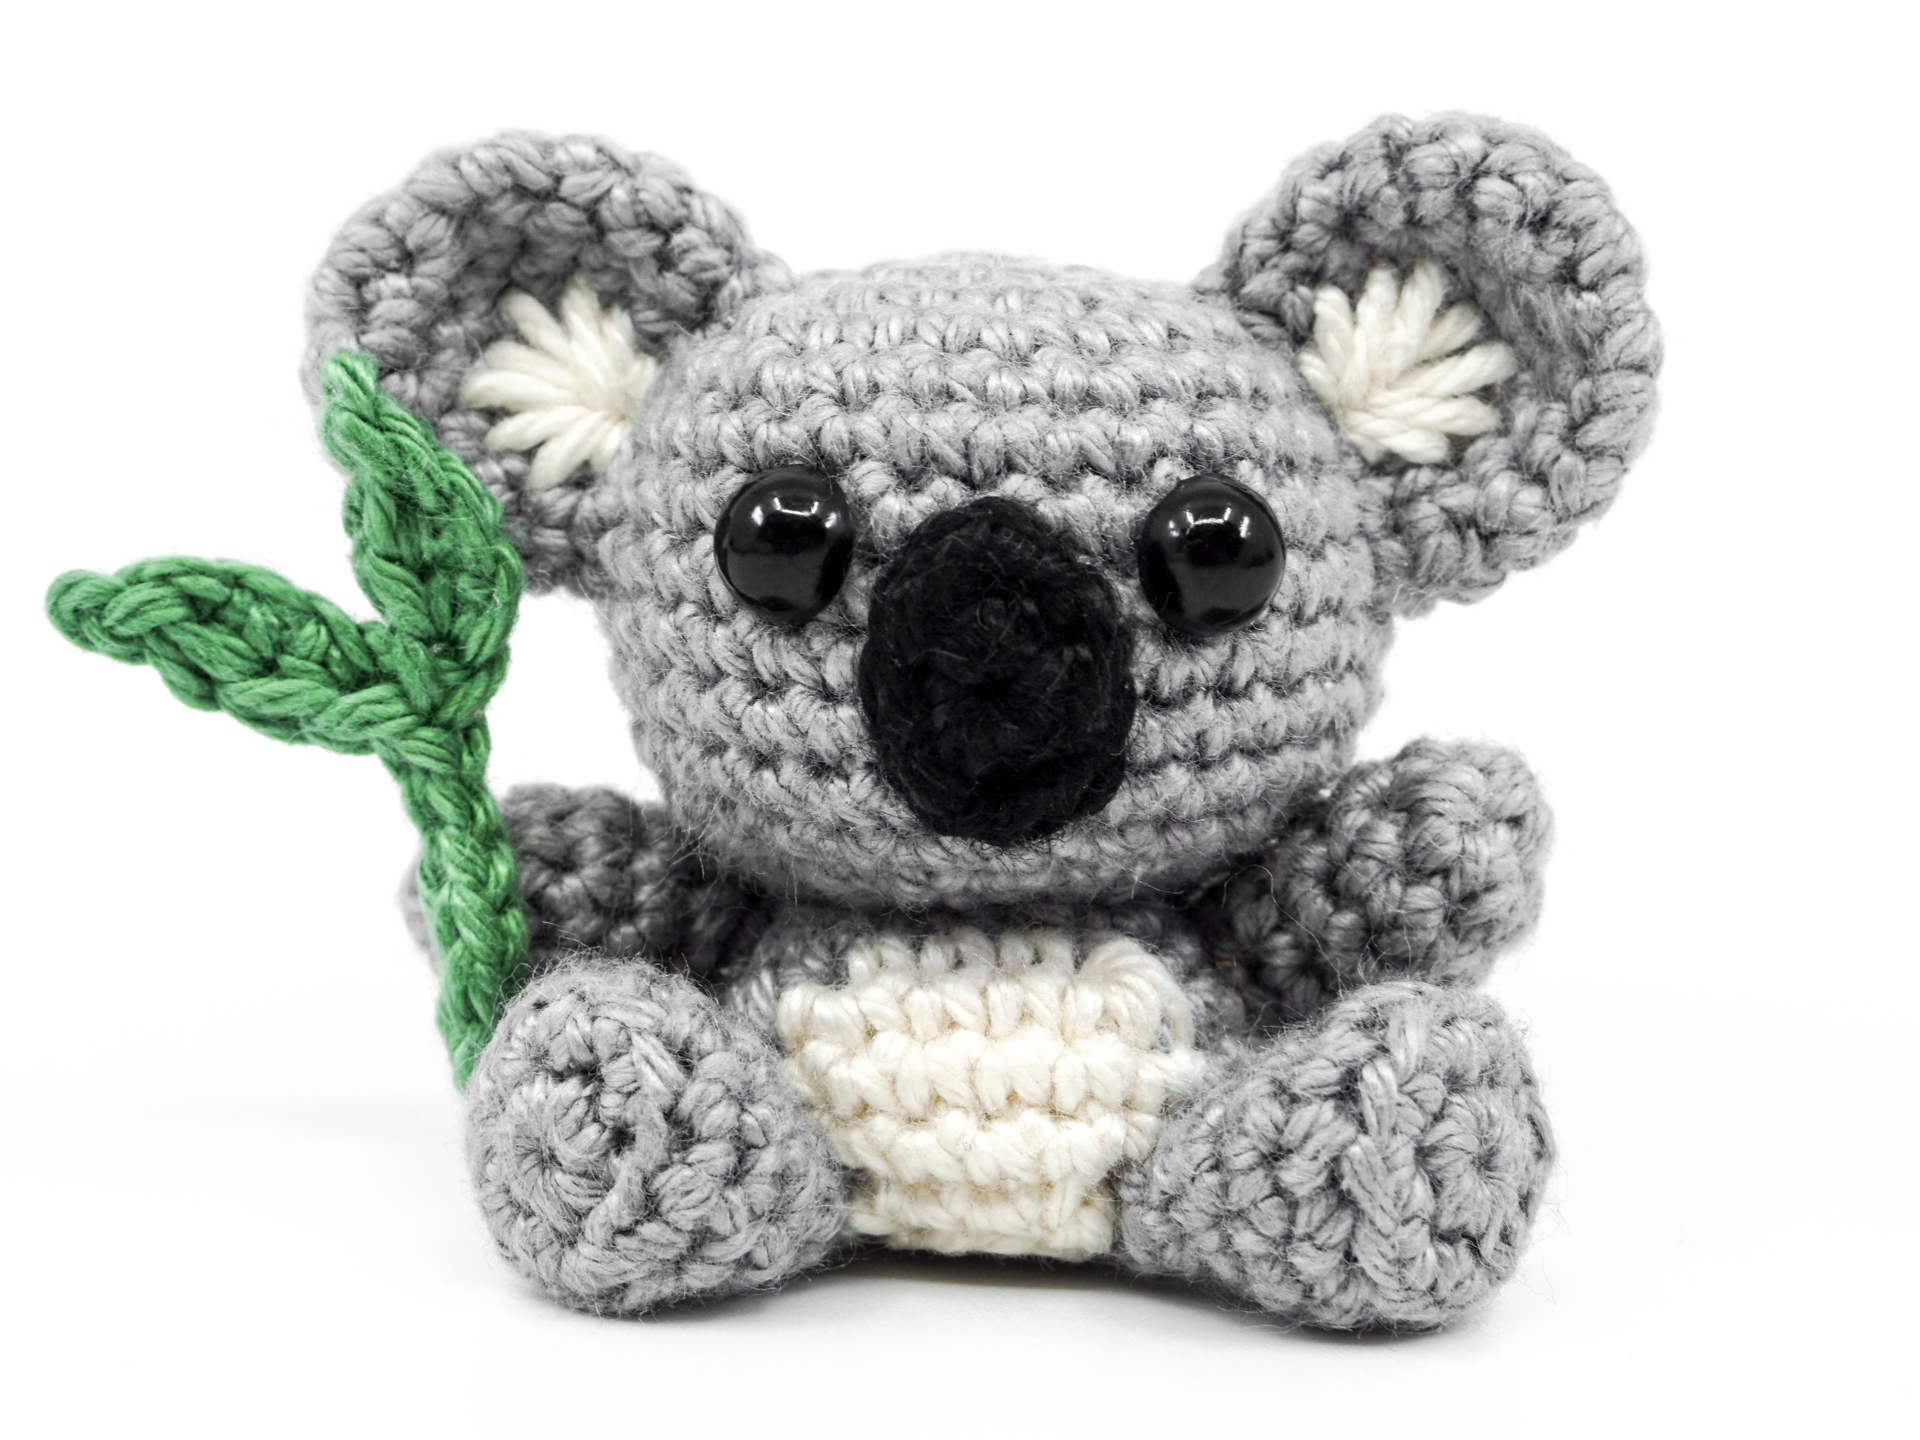 Cute Amigurumi Bears Free Crochet Patterns | 1440x1920